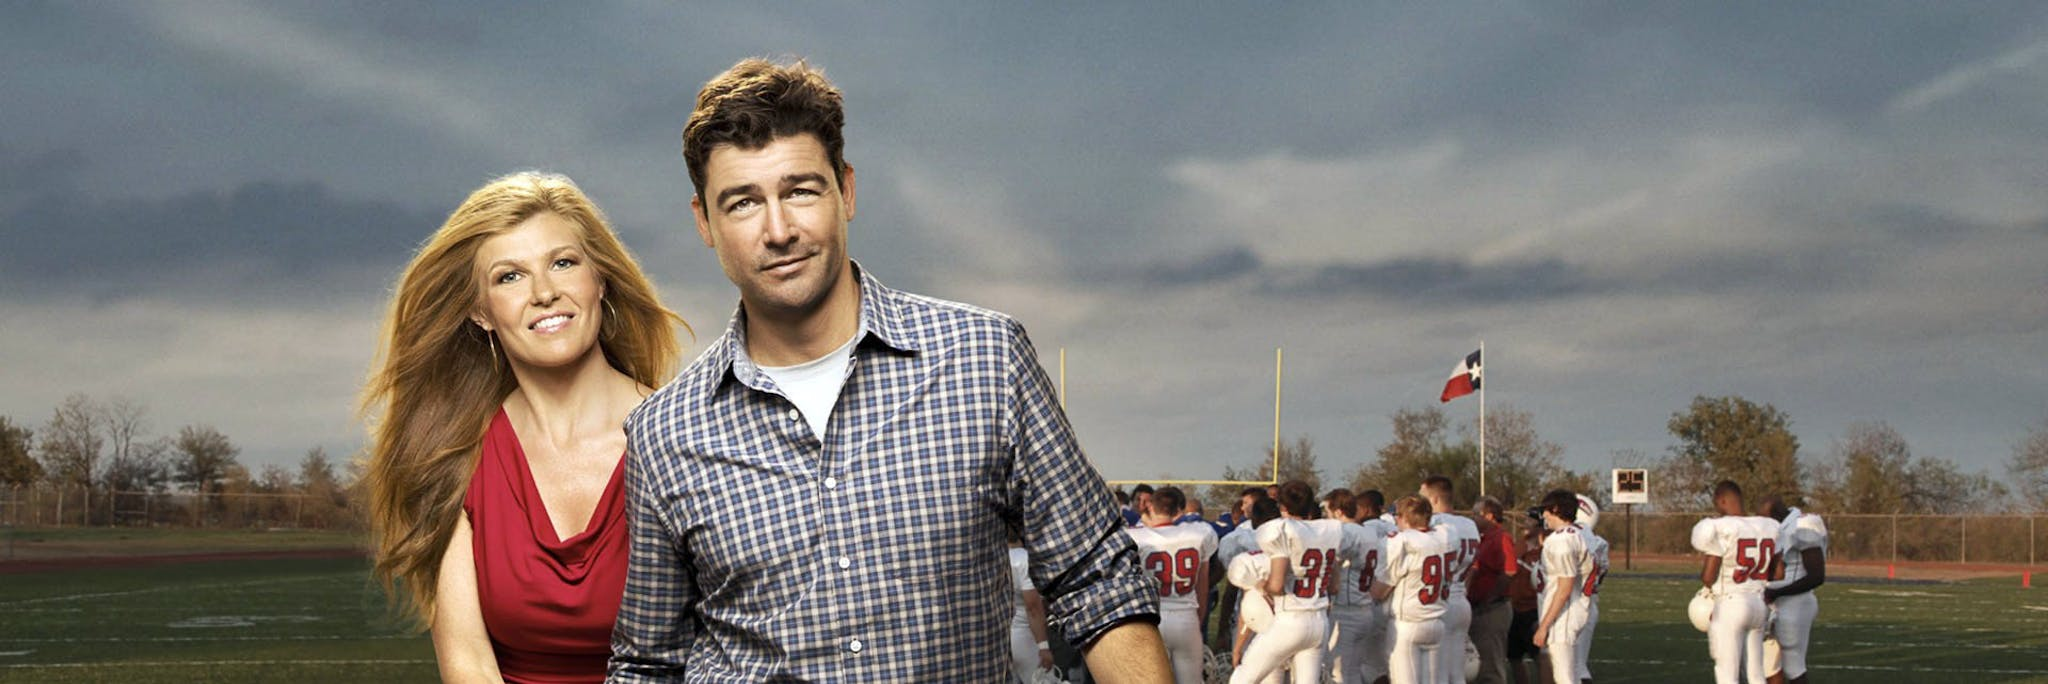 friday night lights music soundtrack season tunefind friday night lights soundtrack